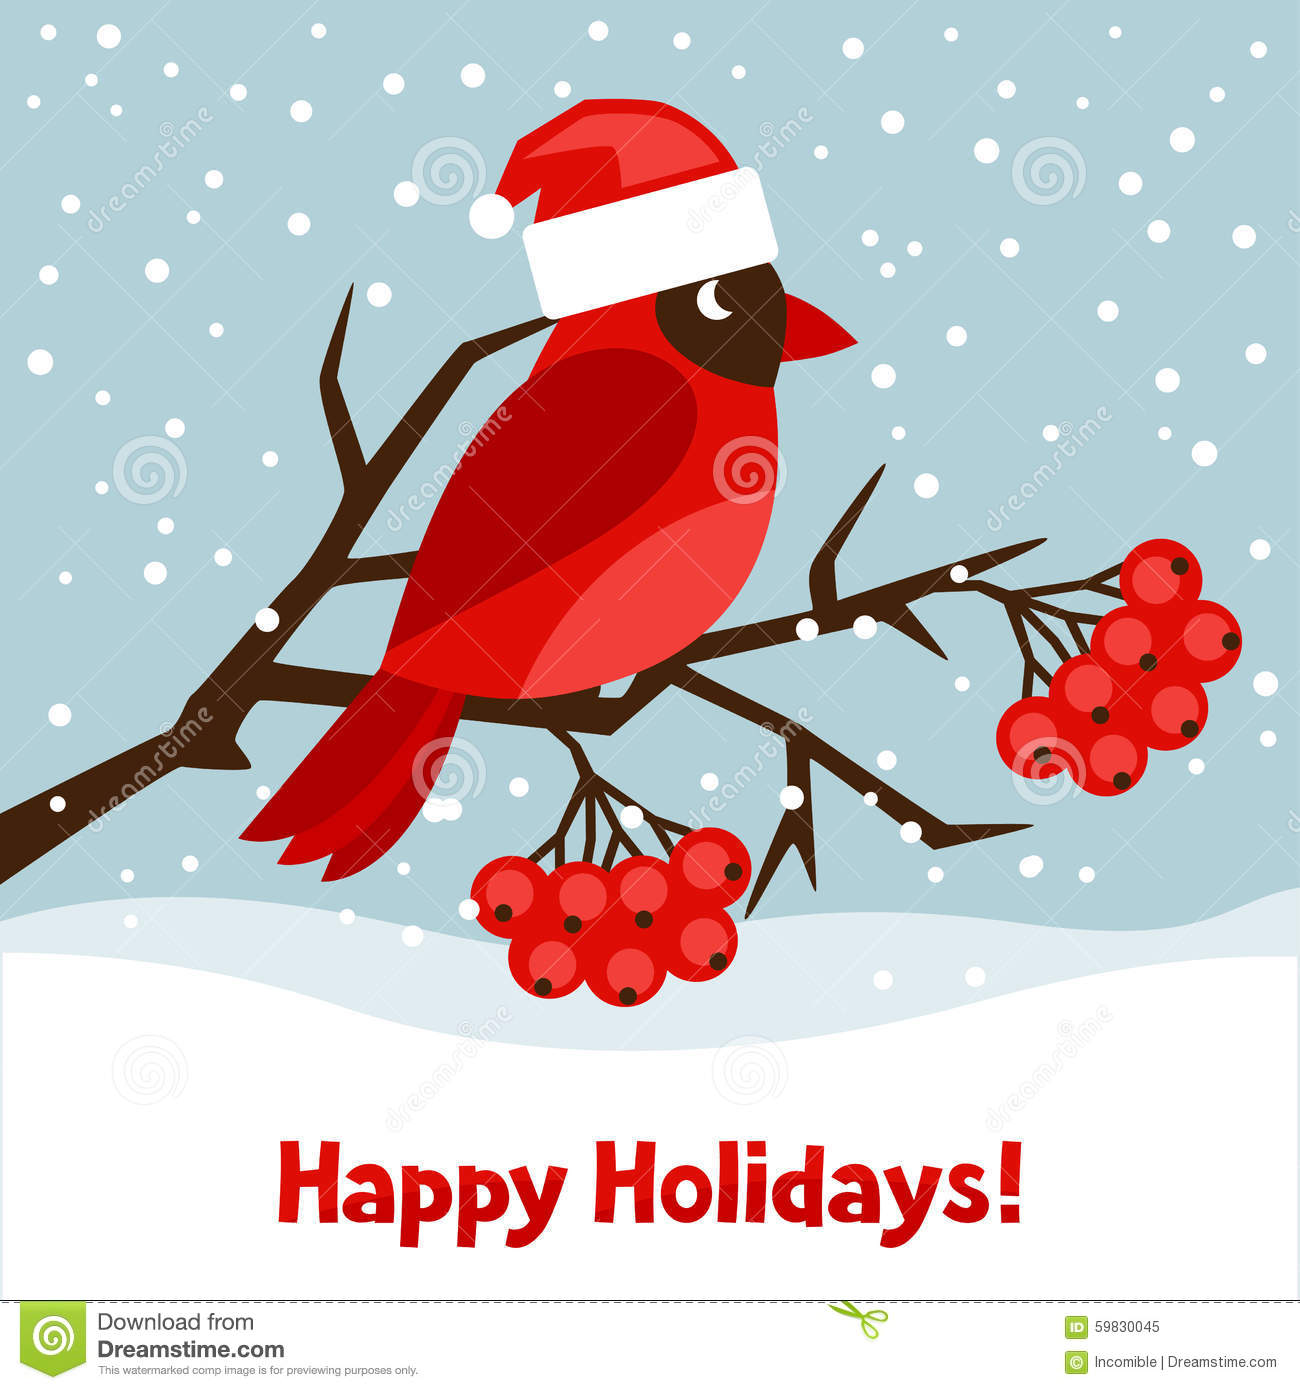 Happy Holidays Greeting Card With Bird Red Stock Vector ...